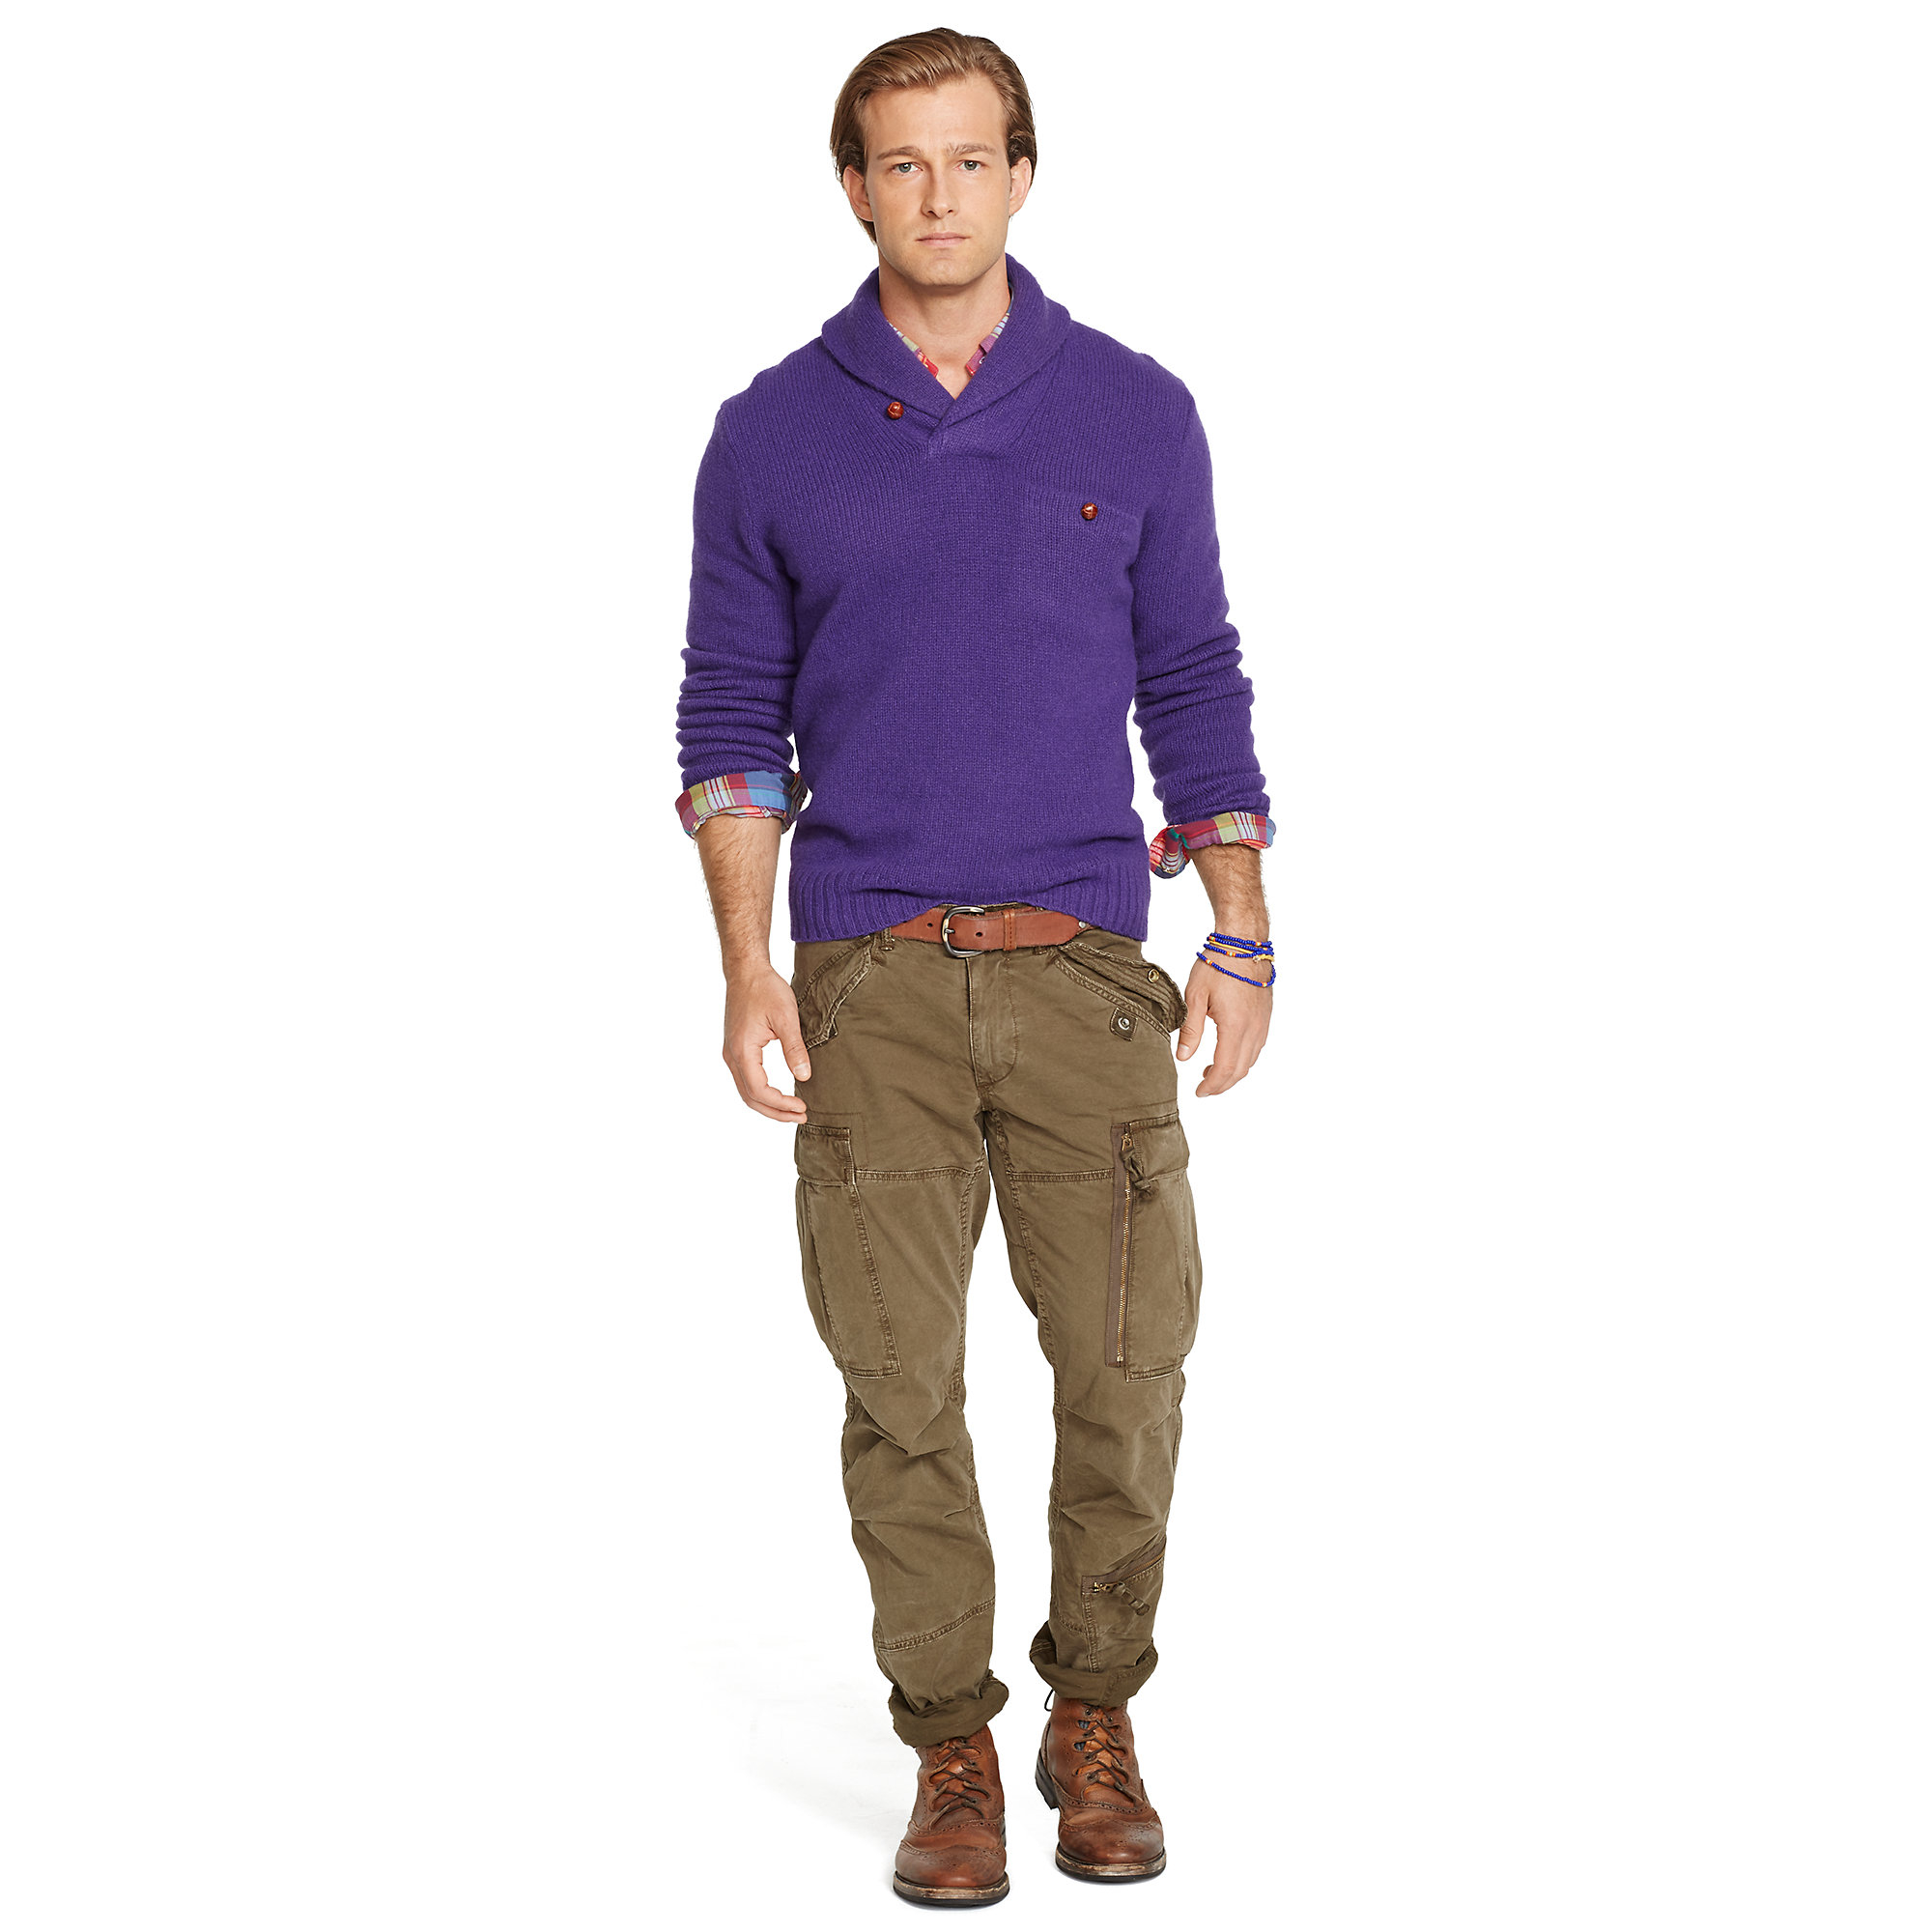 lyst polo ralph lauren shawl pullover sweater in purple for men. Black Bedroom Furniture Sets. Home Design Ideas